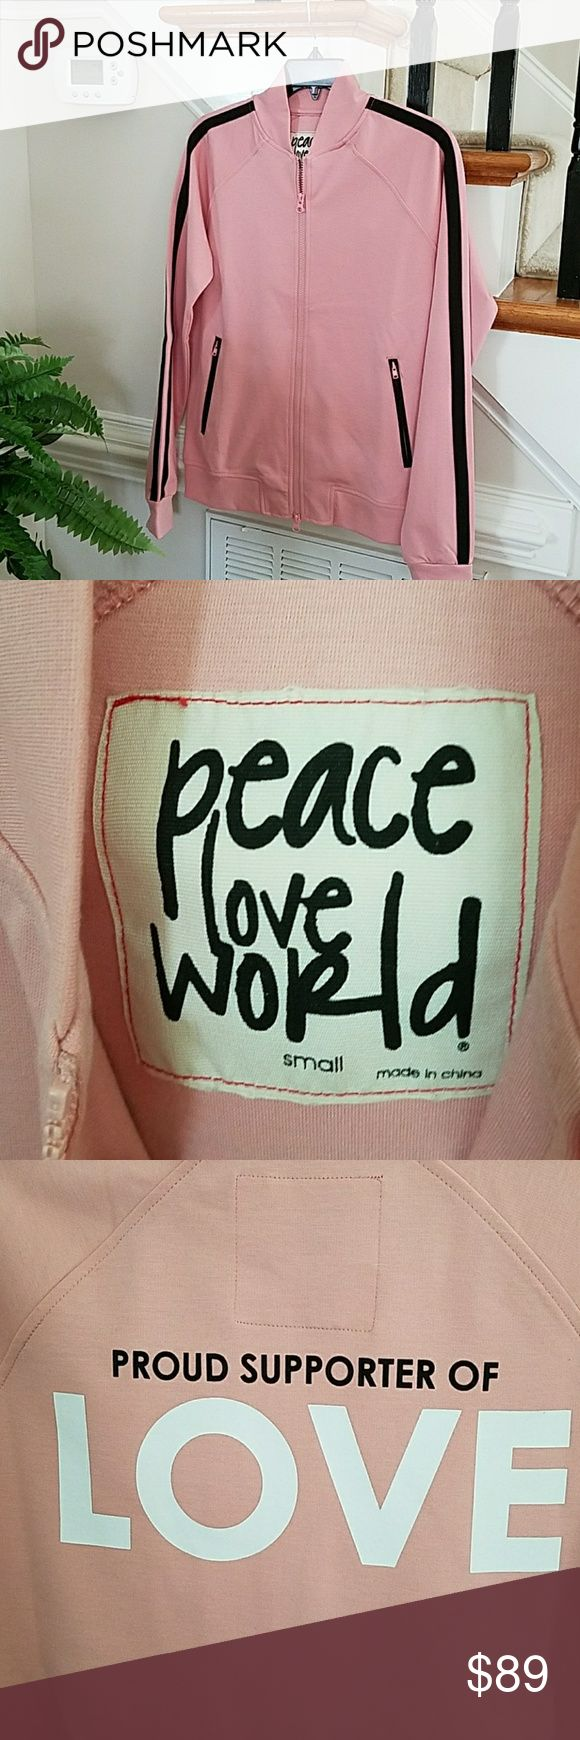 "Peace Love World MIA Jacket Love this Jacket! Wearing mine now!  Polyester Rayon Spandex   Peace Love World MIA Jacket in Rose Pink with black accented front zipper pockets  Back stripes from shoulders to cuffs  Tab collar  Zipper closure  Word embellishment on the back of Jacket  ""PROUD supporter of LOVE"" Peace Love World Jackets & Coats Utility Jackets"